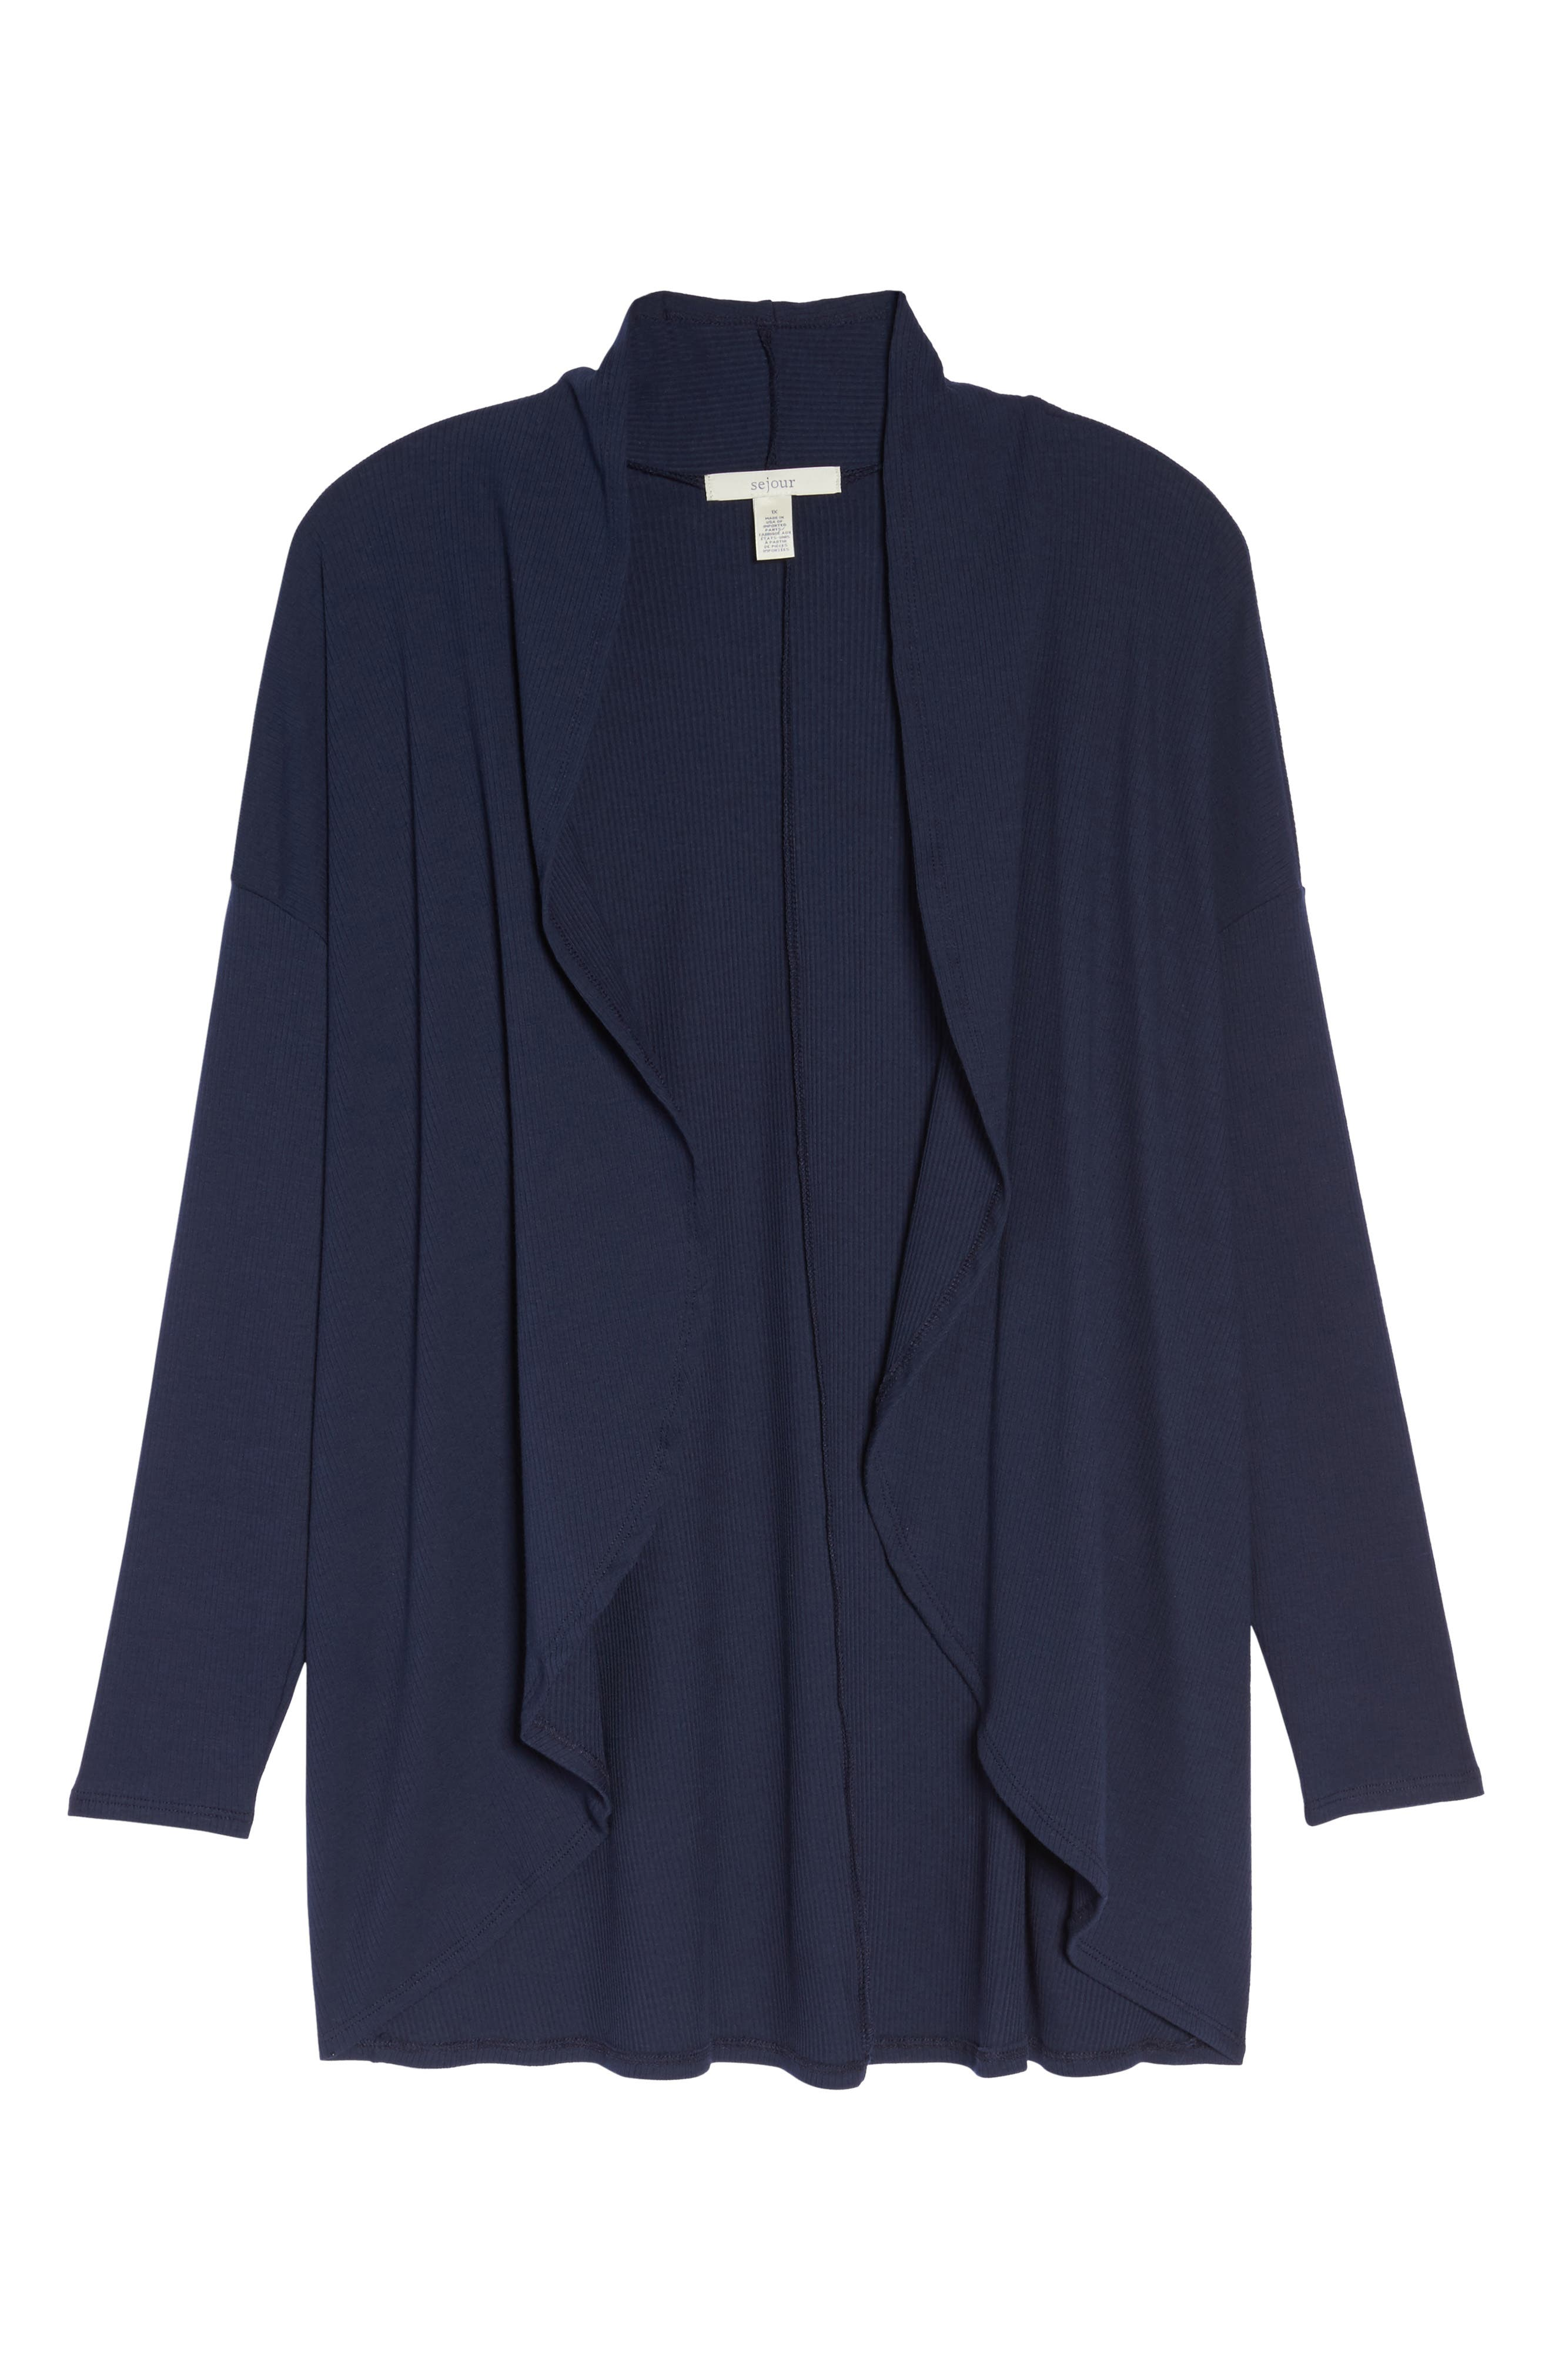 Ribbed Cocoon Cardigan,                             Alternate thumbnail 6, color,                             Navy Peacoat